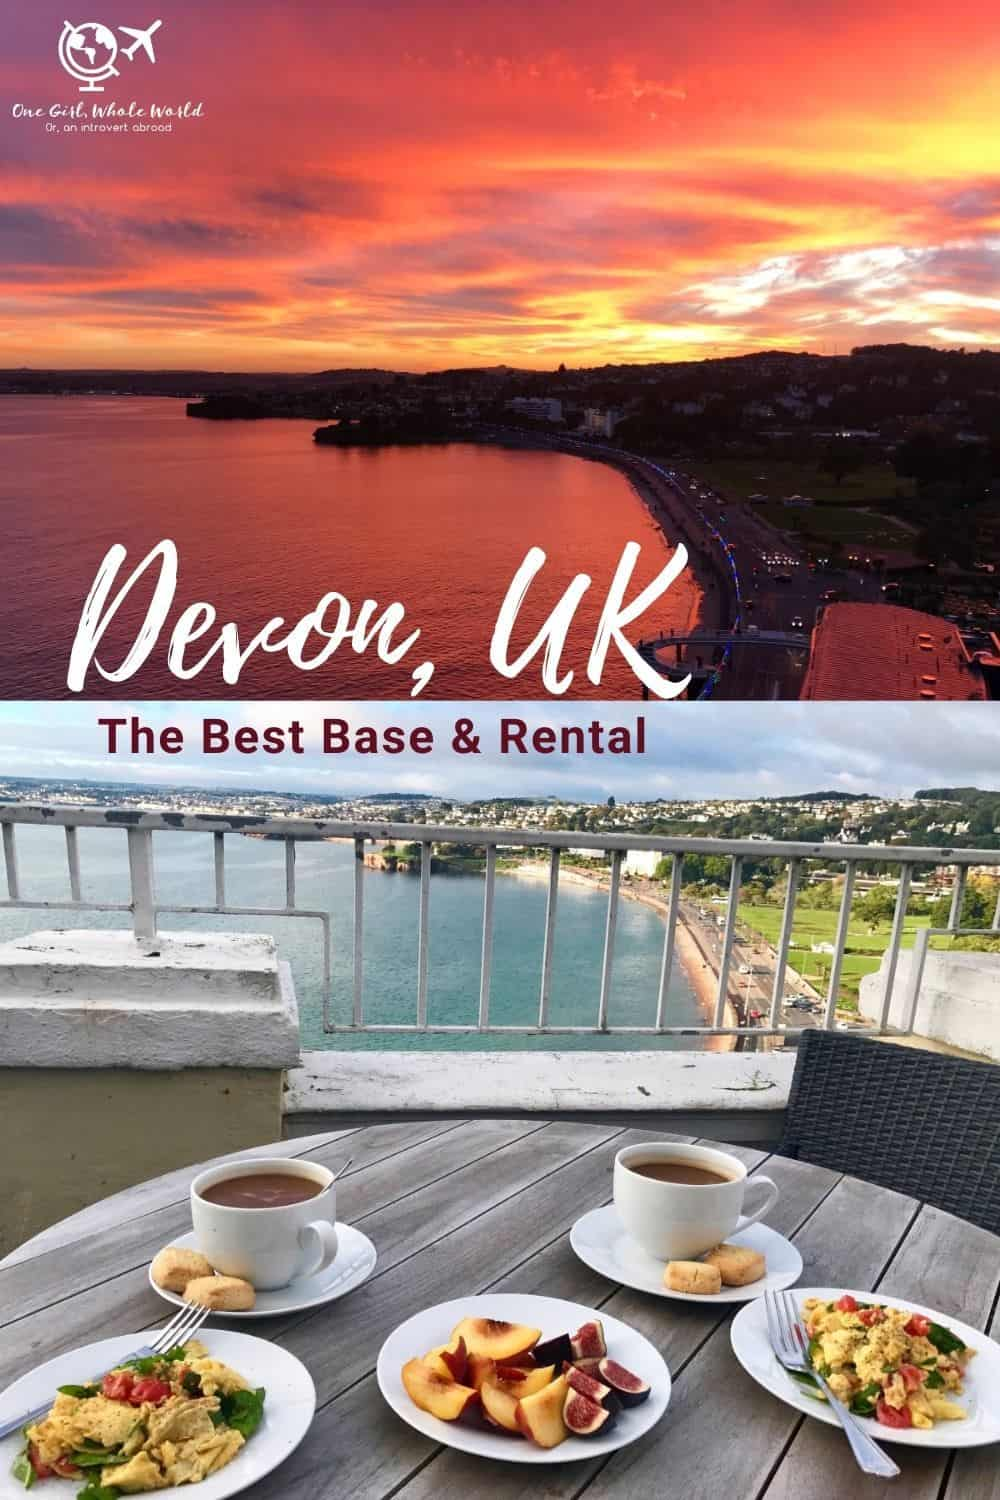 The Best Place to Base Yourself in Devon, & the Cutest Rental | If you're planning a trip to the south of England and wondering where to stay in Devon, look no further than Torquay...I share the Airbnb we rented and absolutely loved, with the best ocean sunsets! Where to stay in Torquay UK, Torquay rentals. #devon #uk #airbnb #england